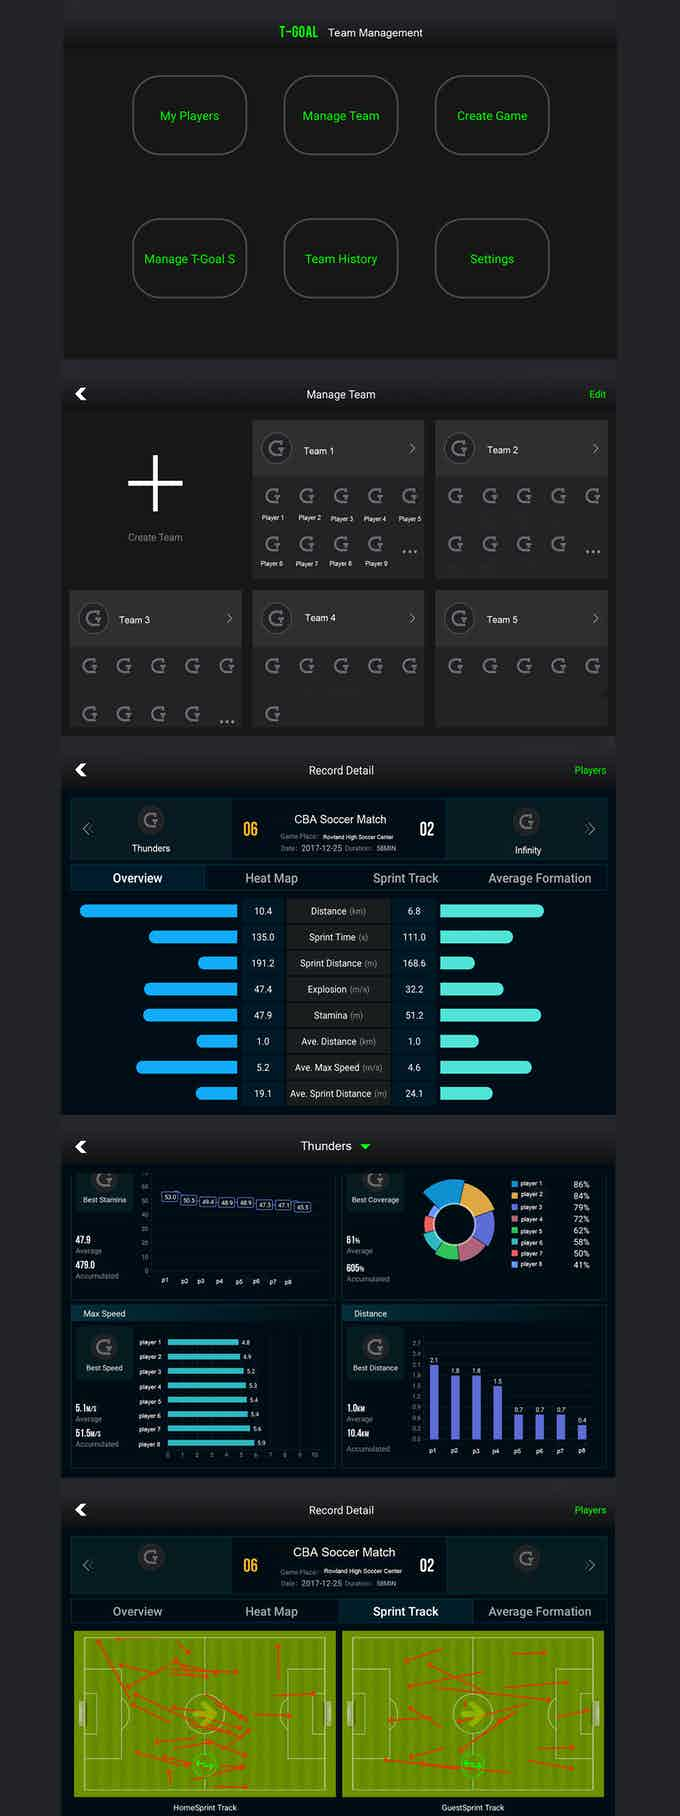 All of your coaching needs in one convenient dashboard